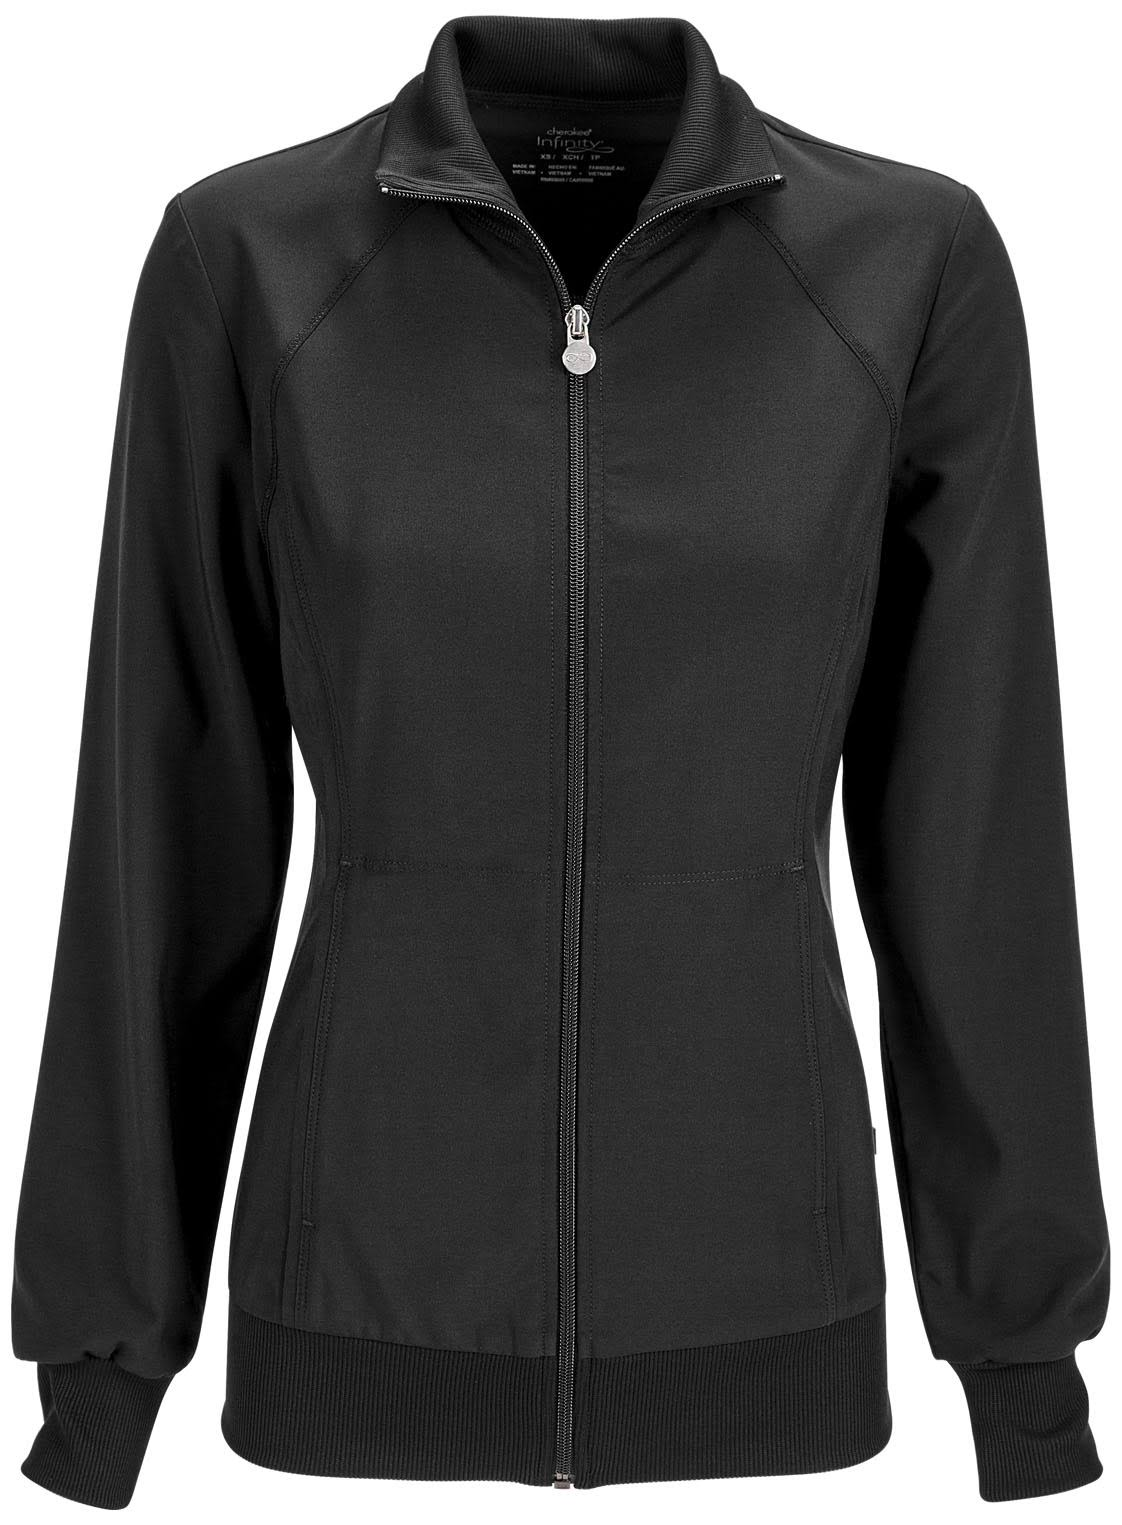 Cherokee Women's Infinity Zip Front Warm Up Jacket - Black, X-Large